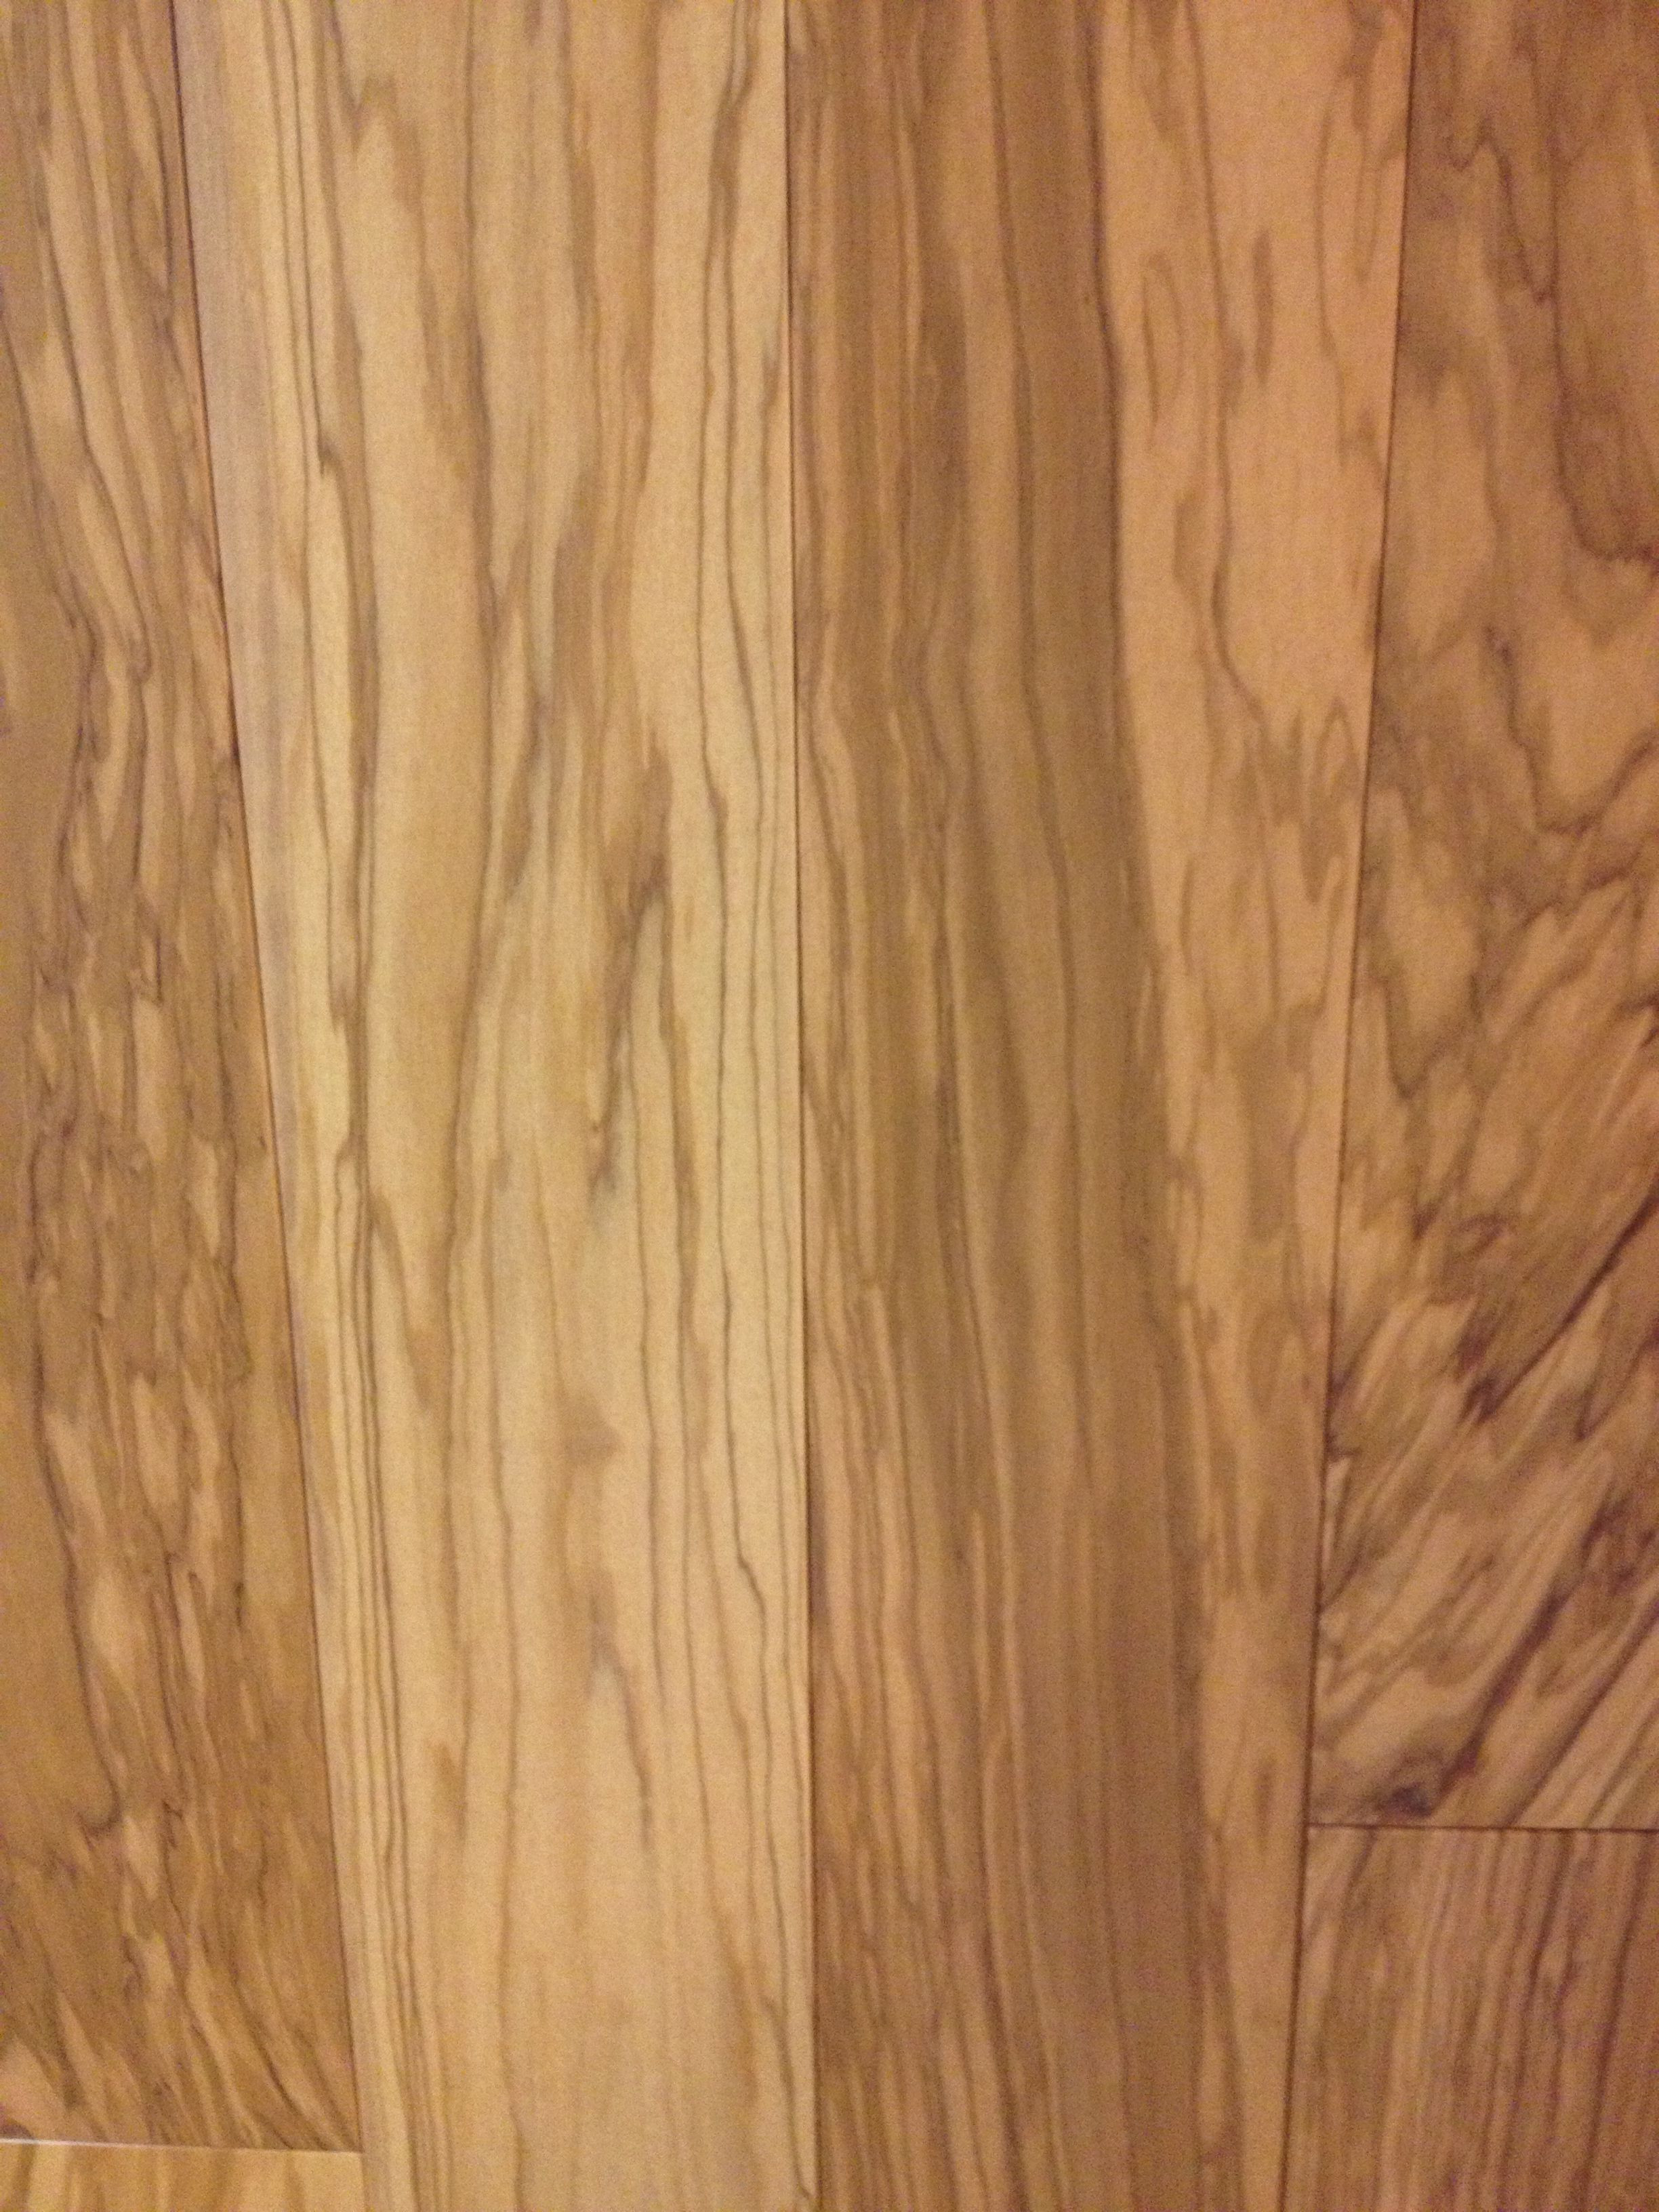 hardwood floor refinishing san francisco of tuscany olive wood floor there is nothing quite like olive wood for intended for tuscany olive wood floor there is nothing quite like olive wood for turning your home